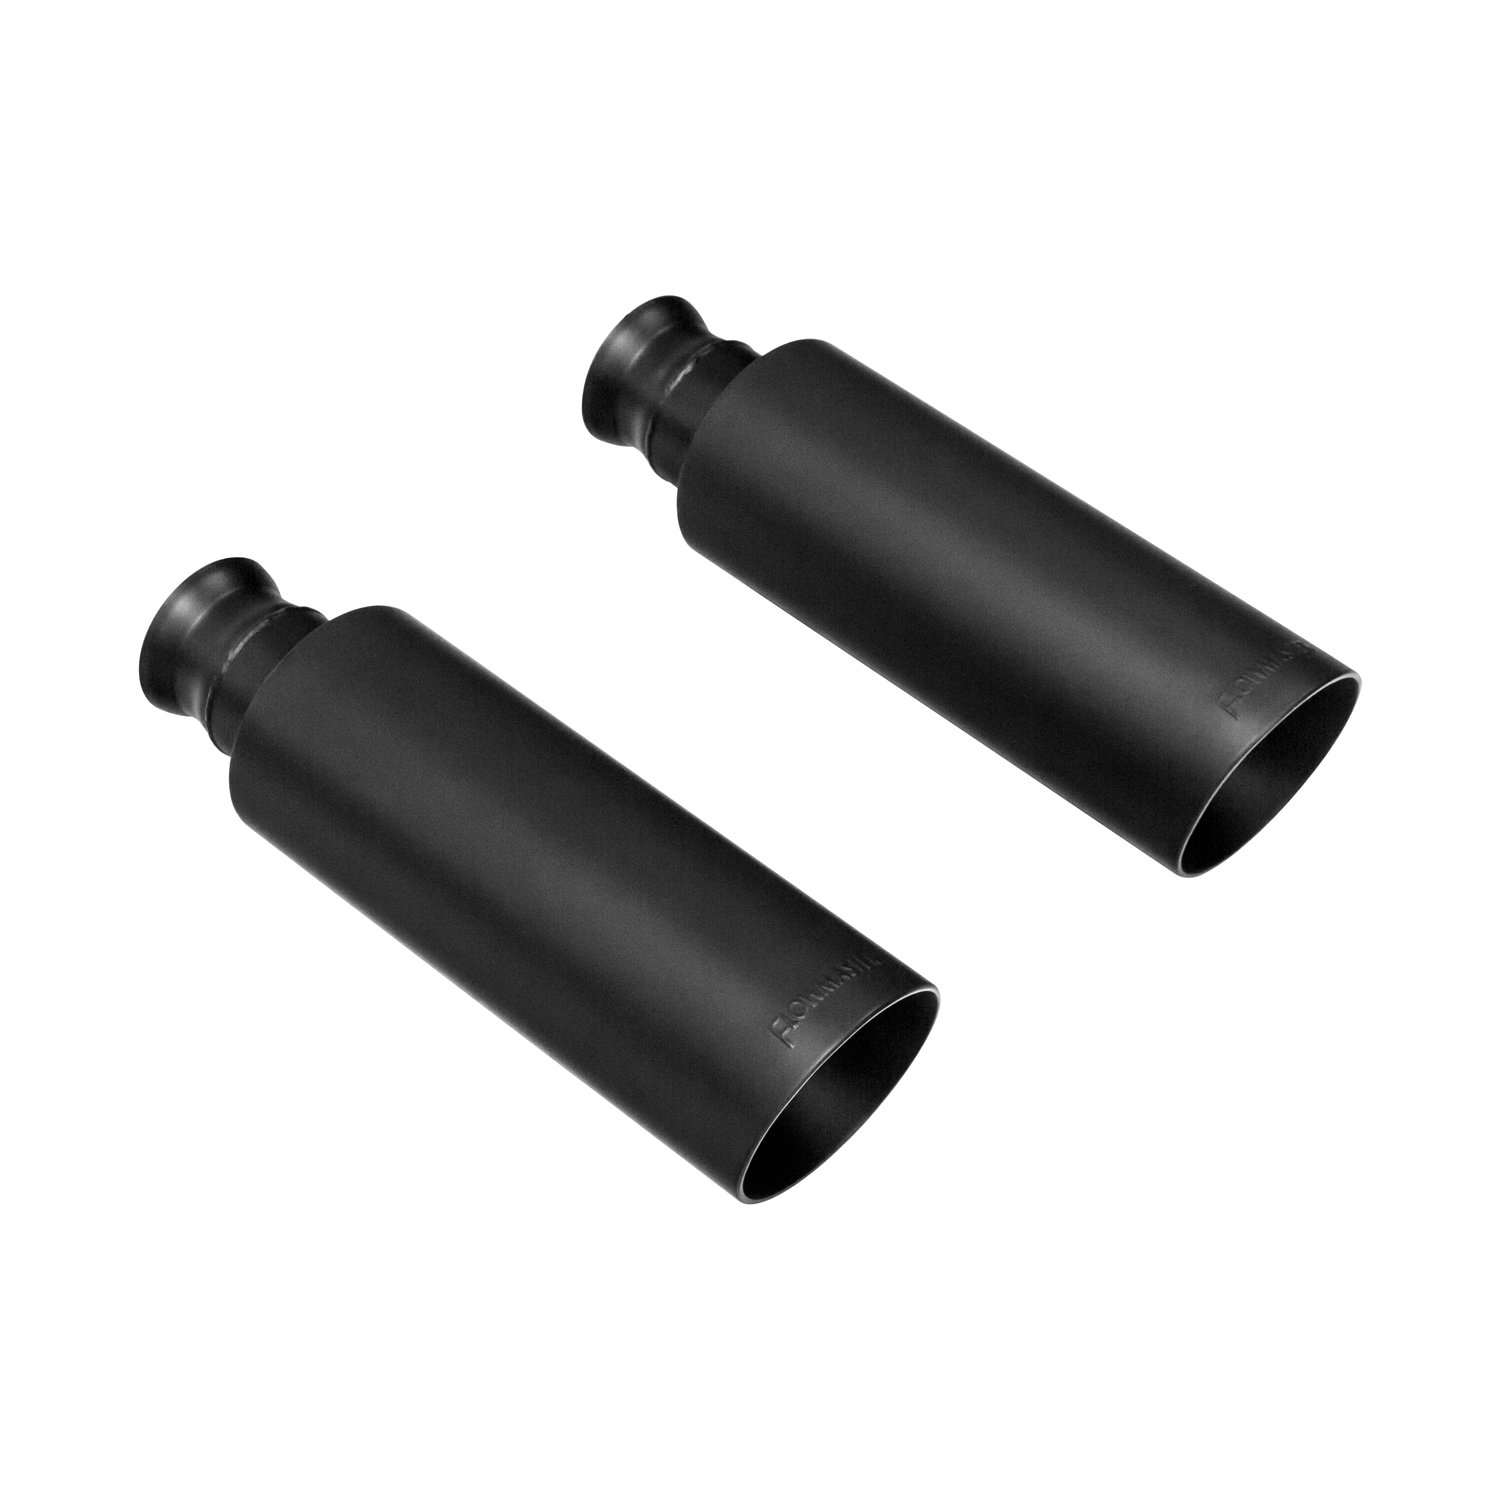 Flowmaster 15356b Flowmaster Exhaust Tip Direct Fit